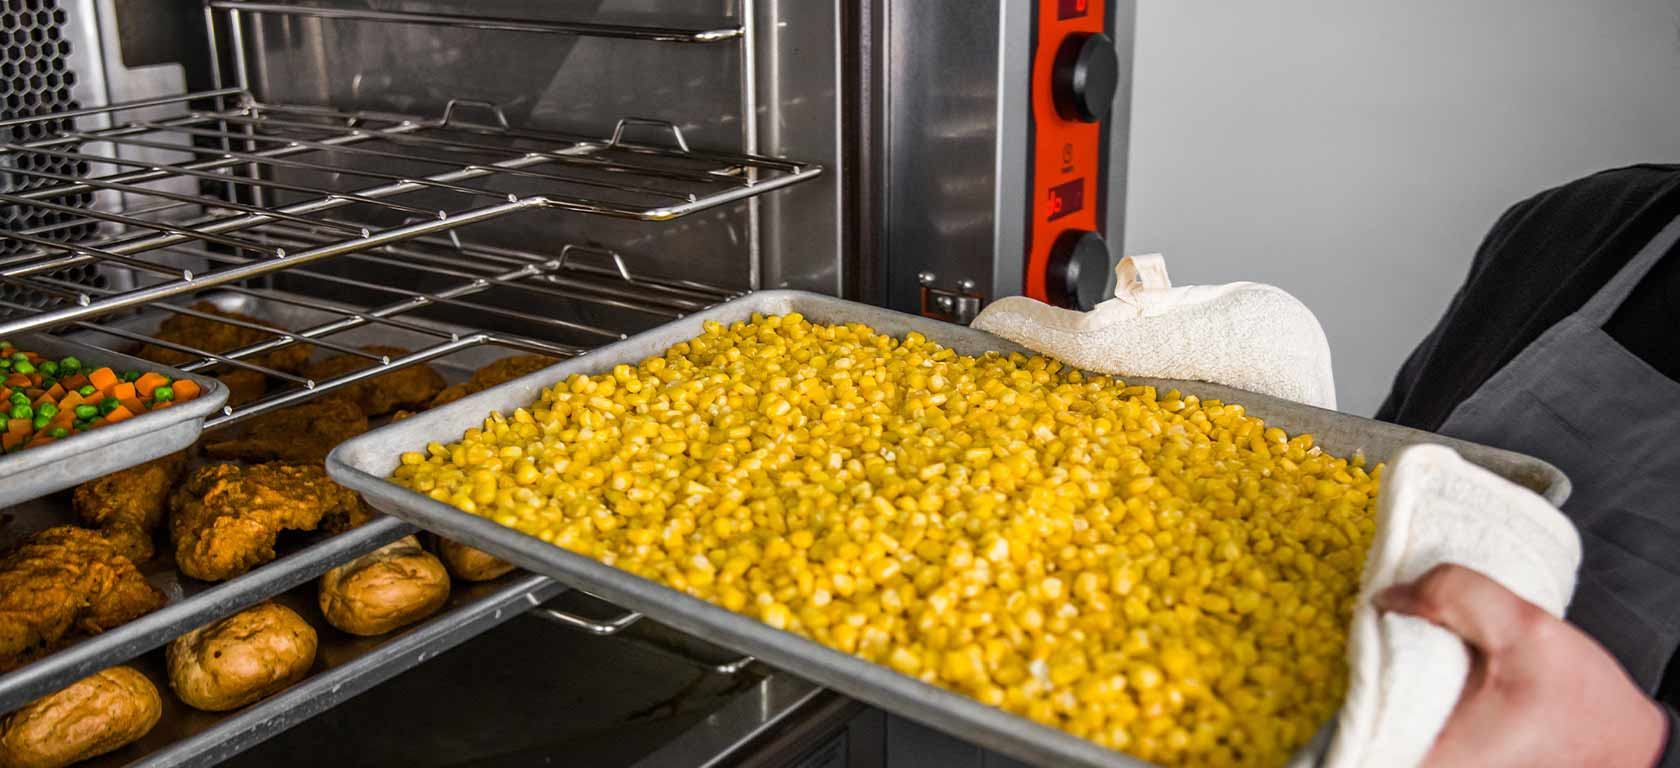 Vulcan Convection Oven being loaded with corn kernels on an aluminum tray.